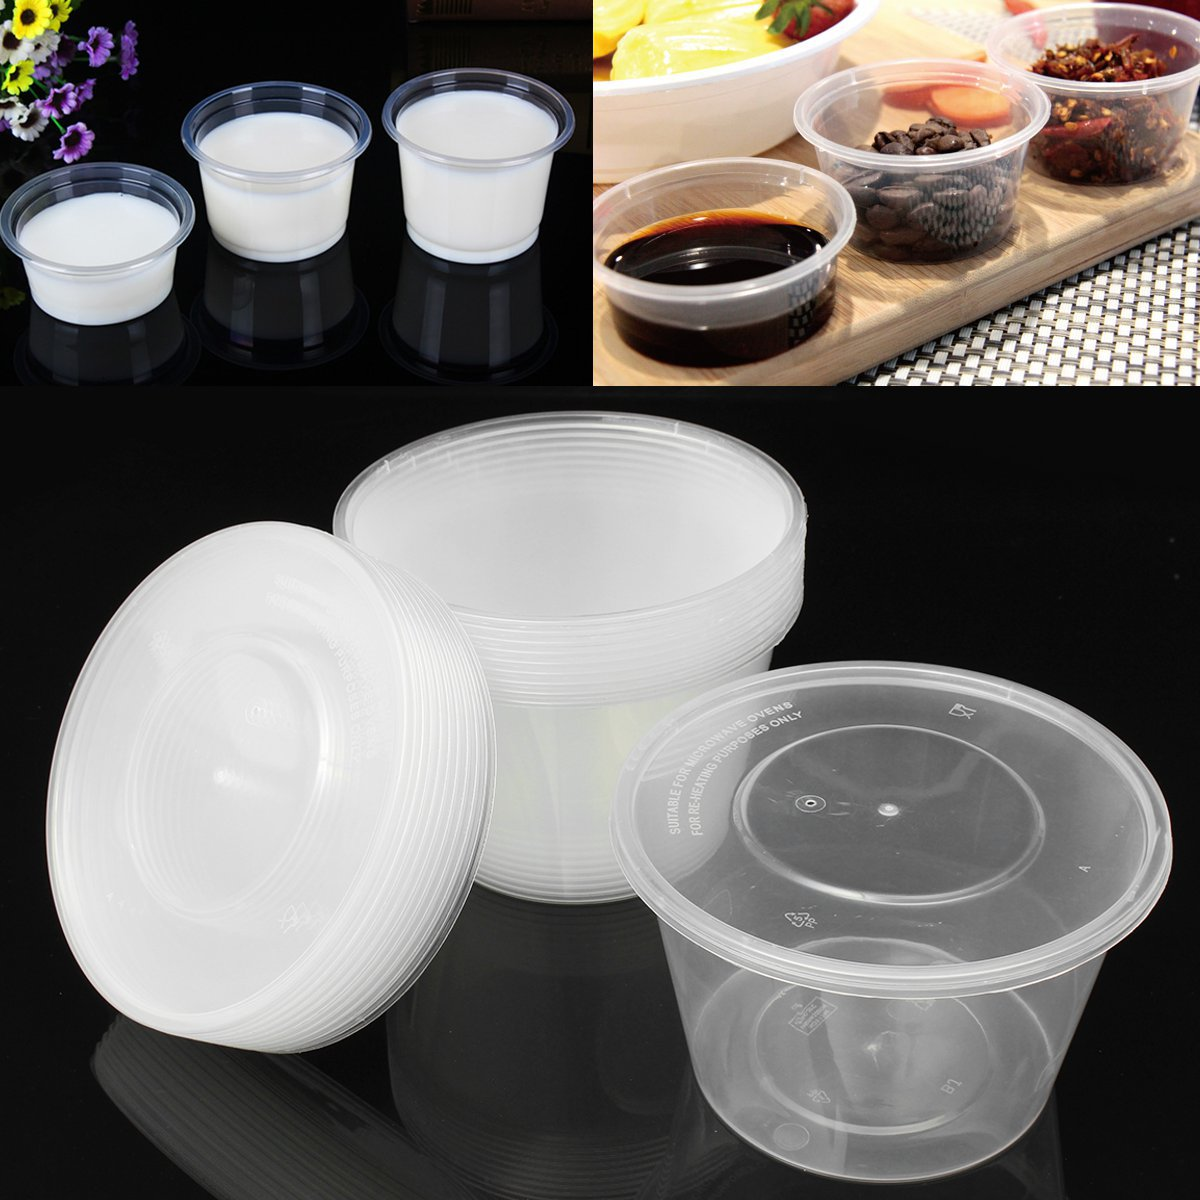 10 Pcs Lot Disposable Portion Cups Condiment Cup With Cover Sauce Yogurt Jelly Pudding Clear Storage Containers Salad Cup Bowl